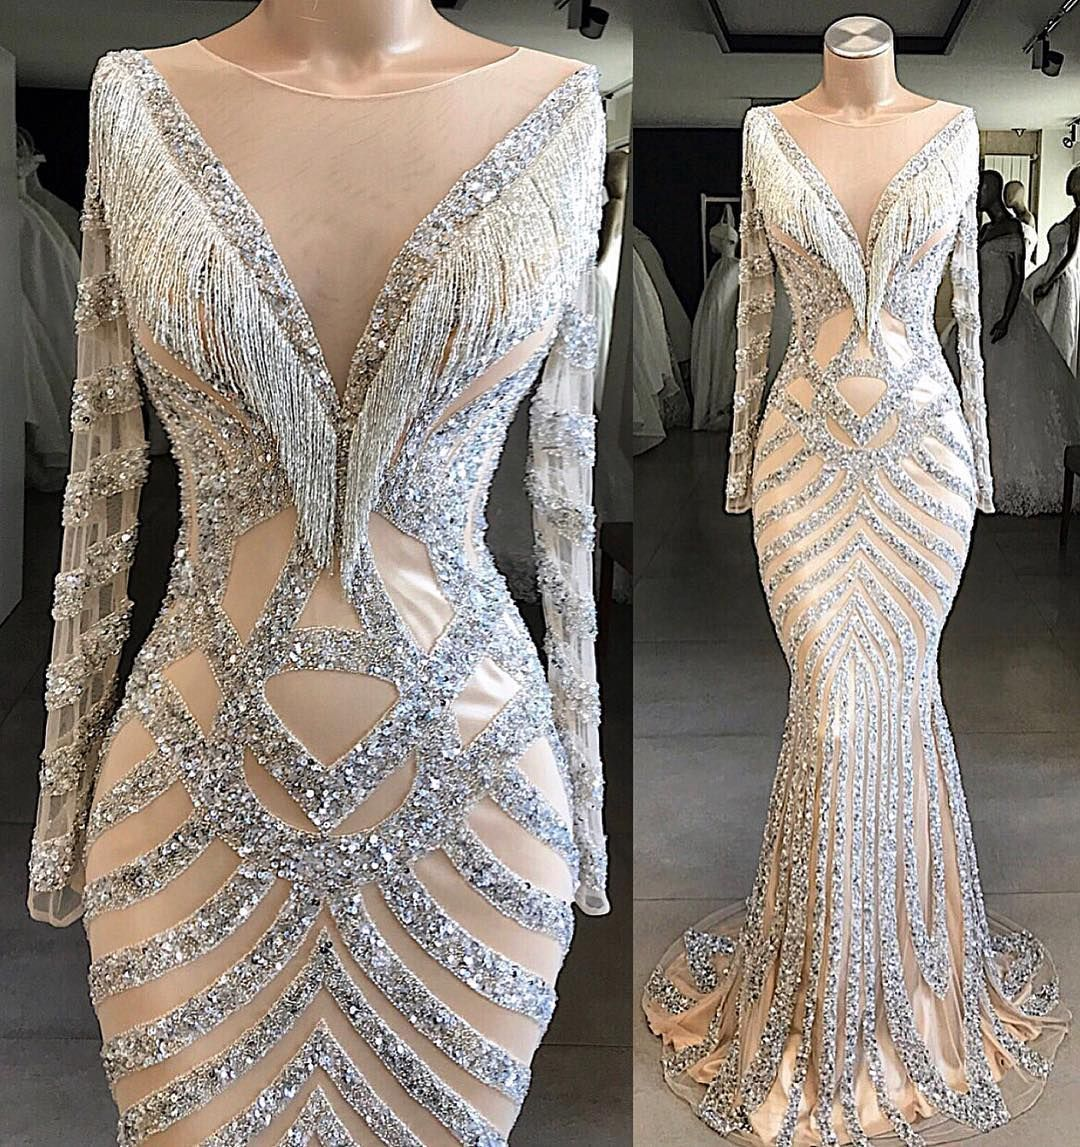 couture glamorous couture designer evening gowns